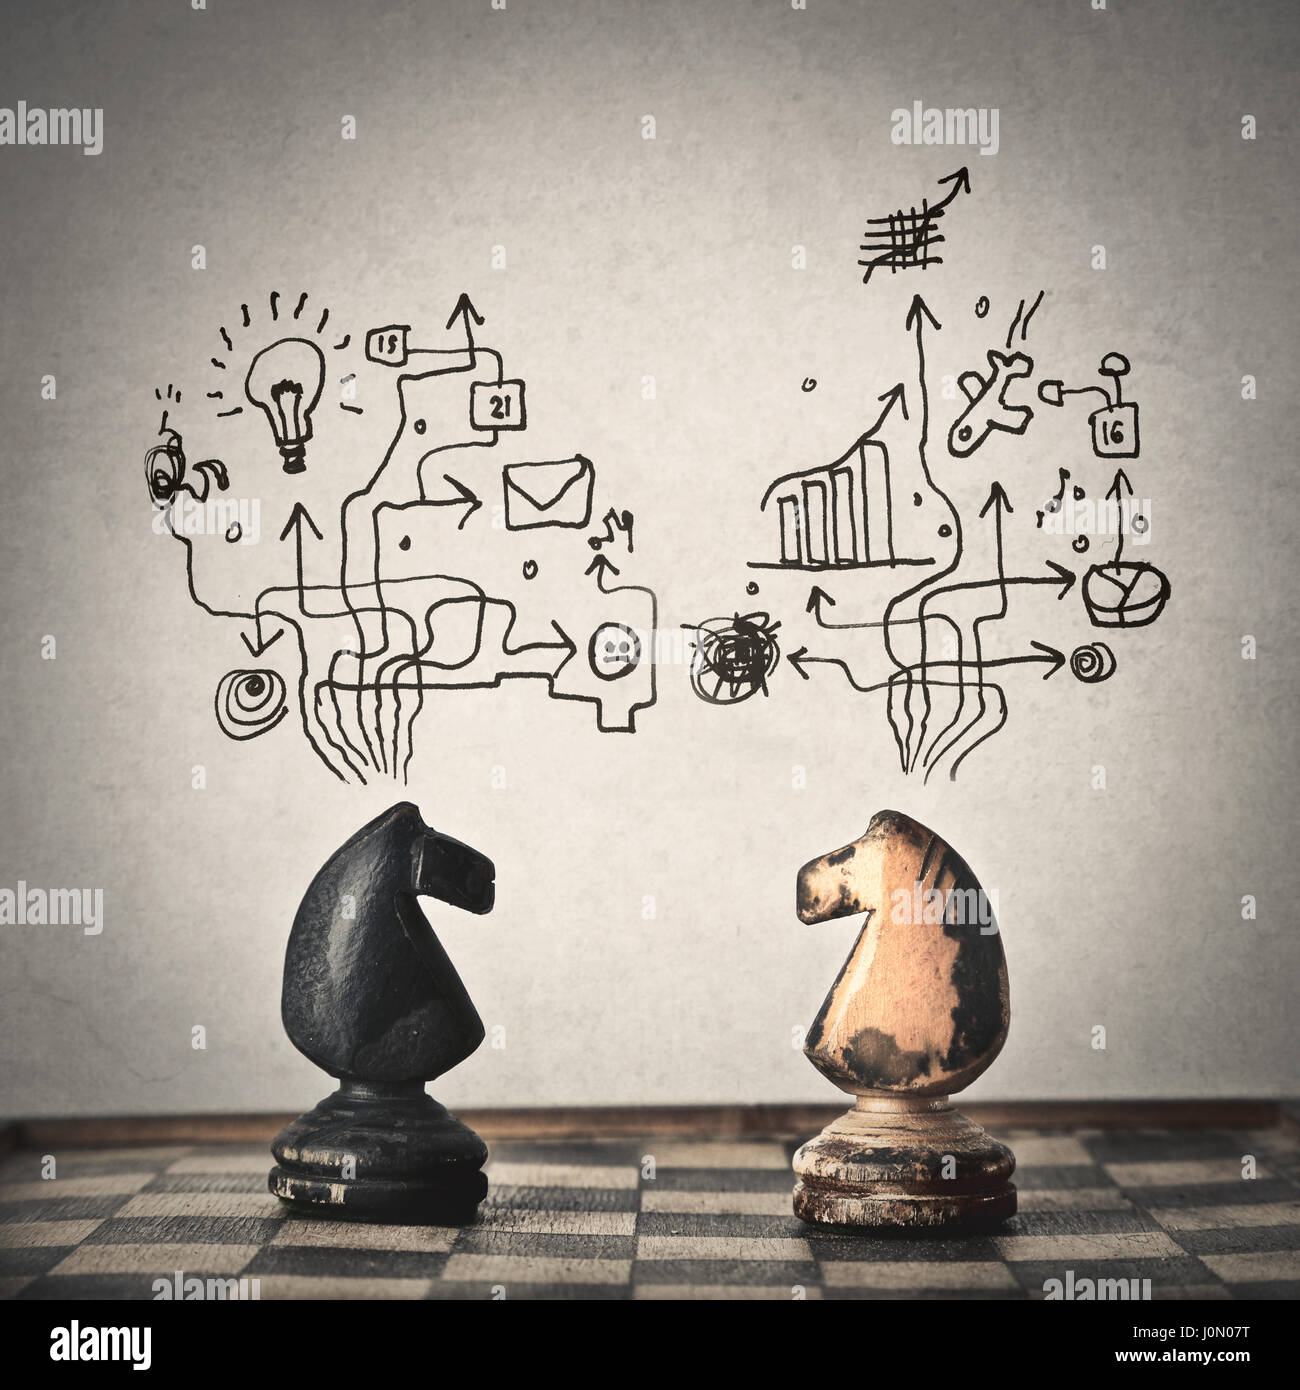 Two chess horses planning (with illustrations) - Stock Image